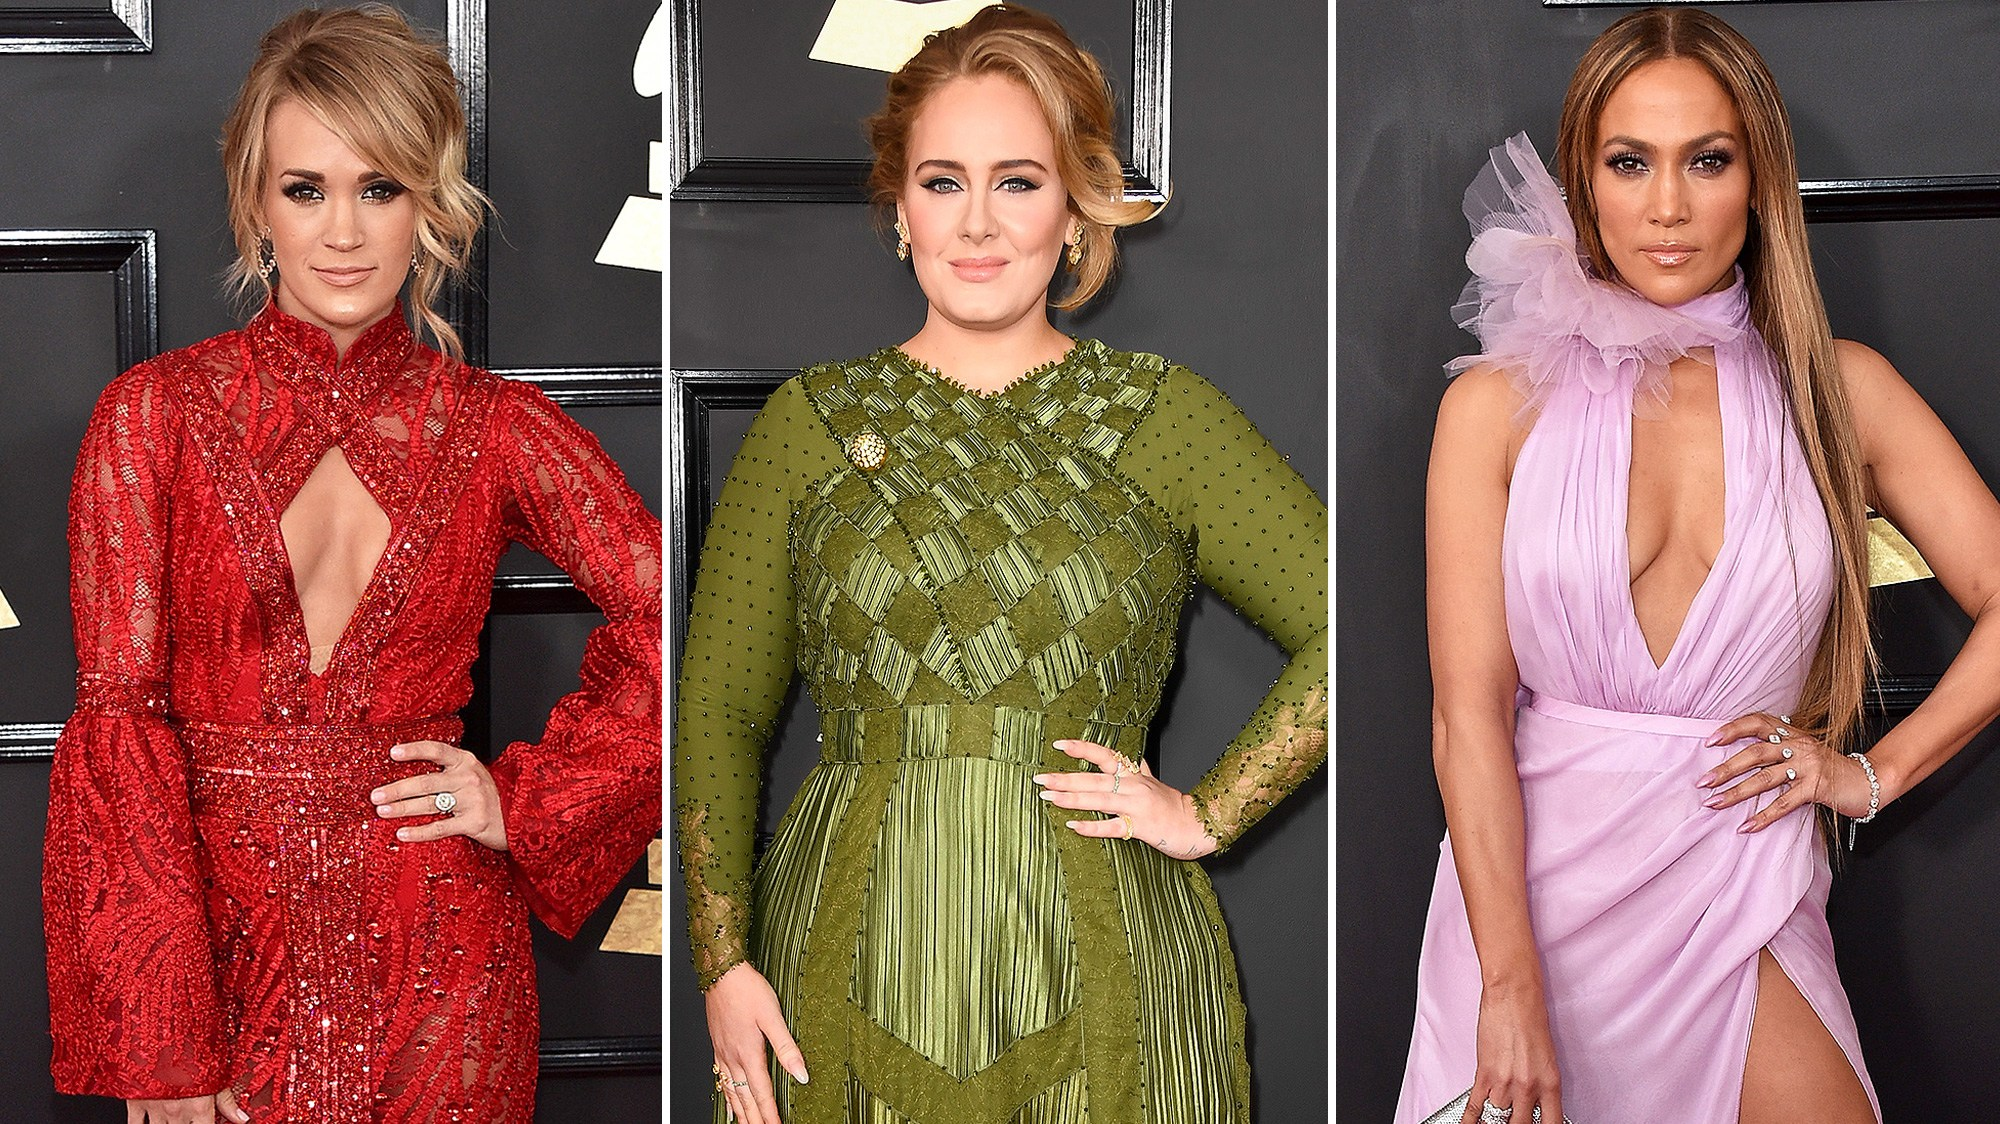 Carrie Underwood, Adele and Jennifer Lopez